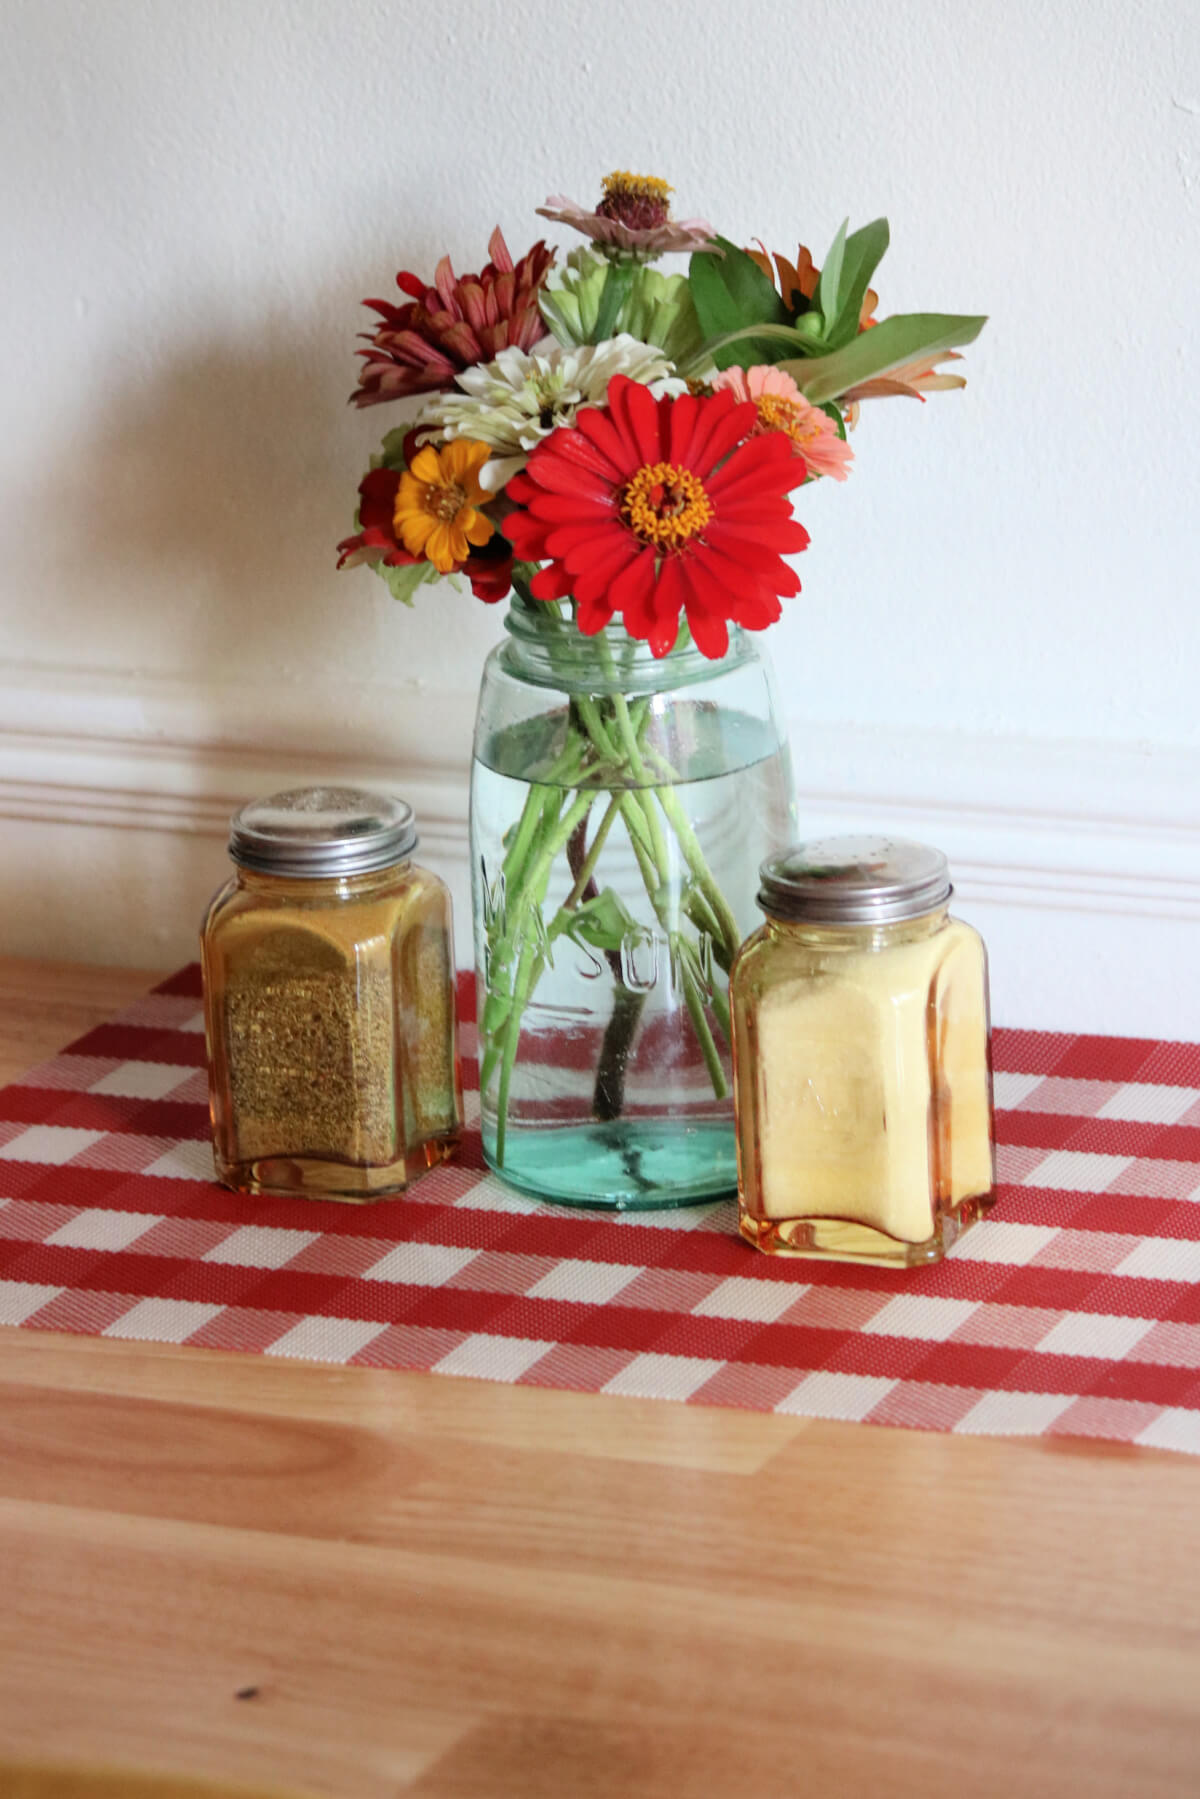 A Jar Of Zinnias & Charlie's Ashes